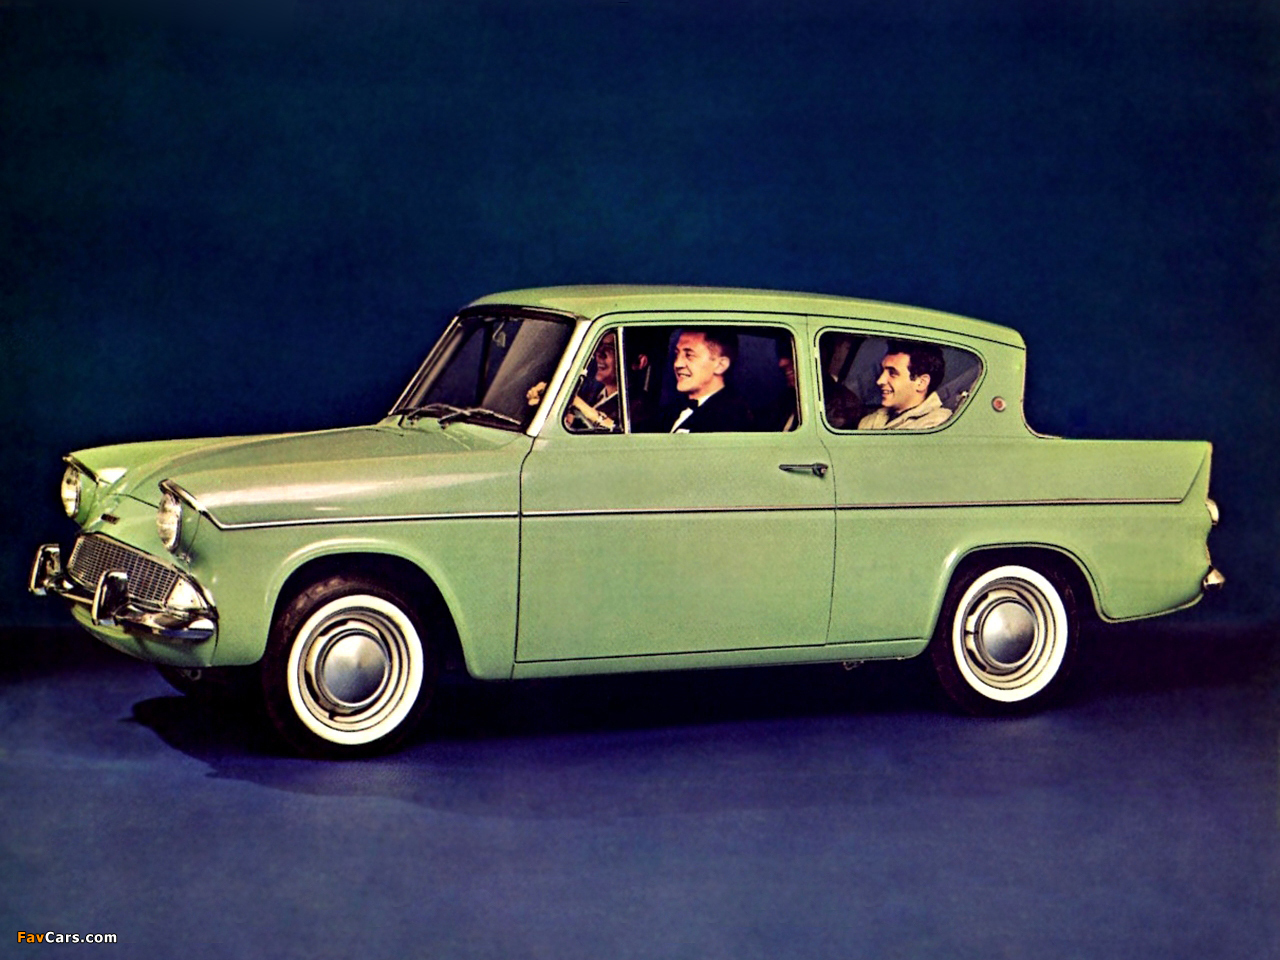 Ford Anglia Cars For Sale Uk